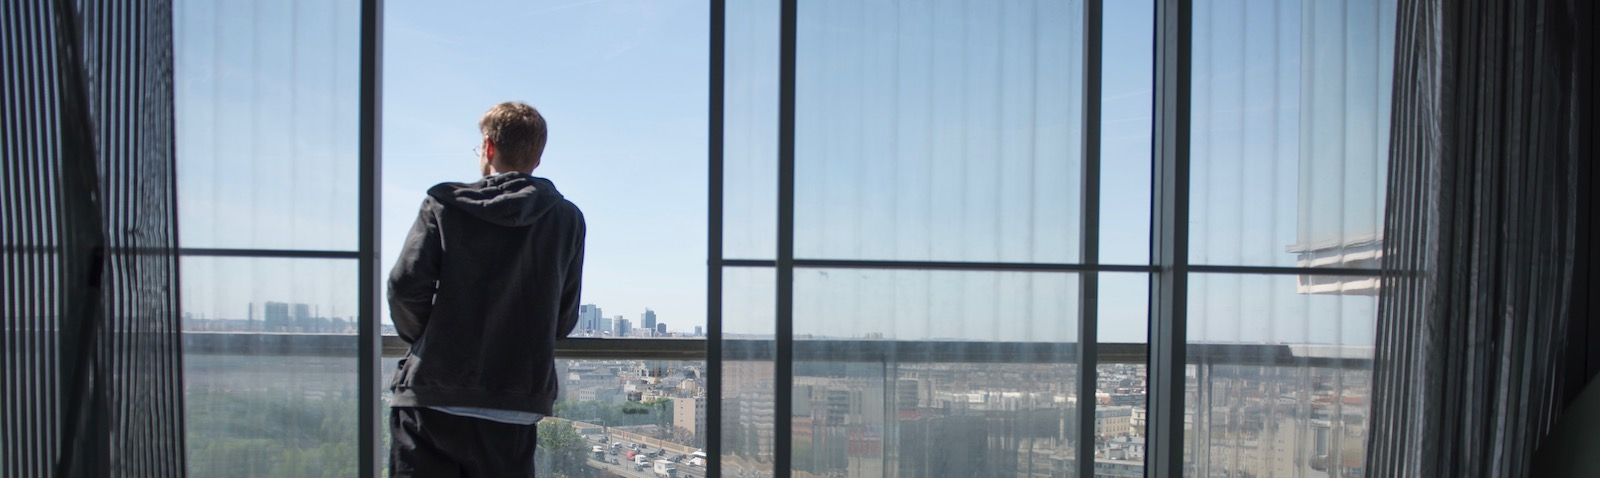 Man looking out of window in daylit building